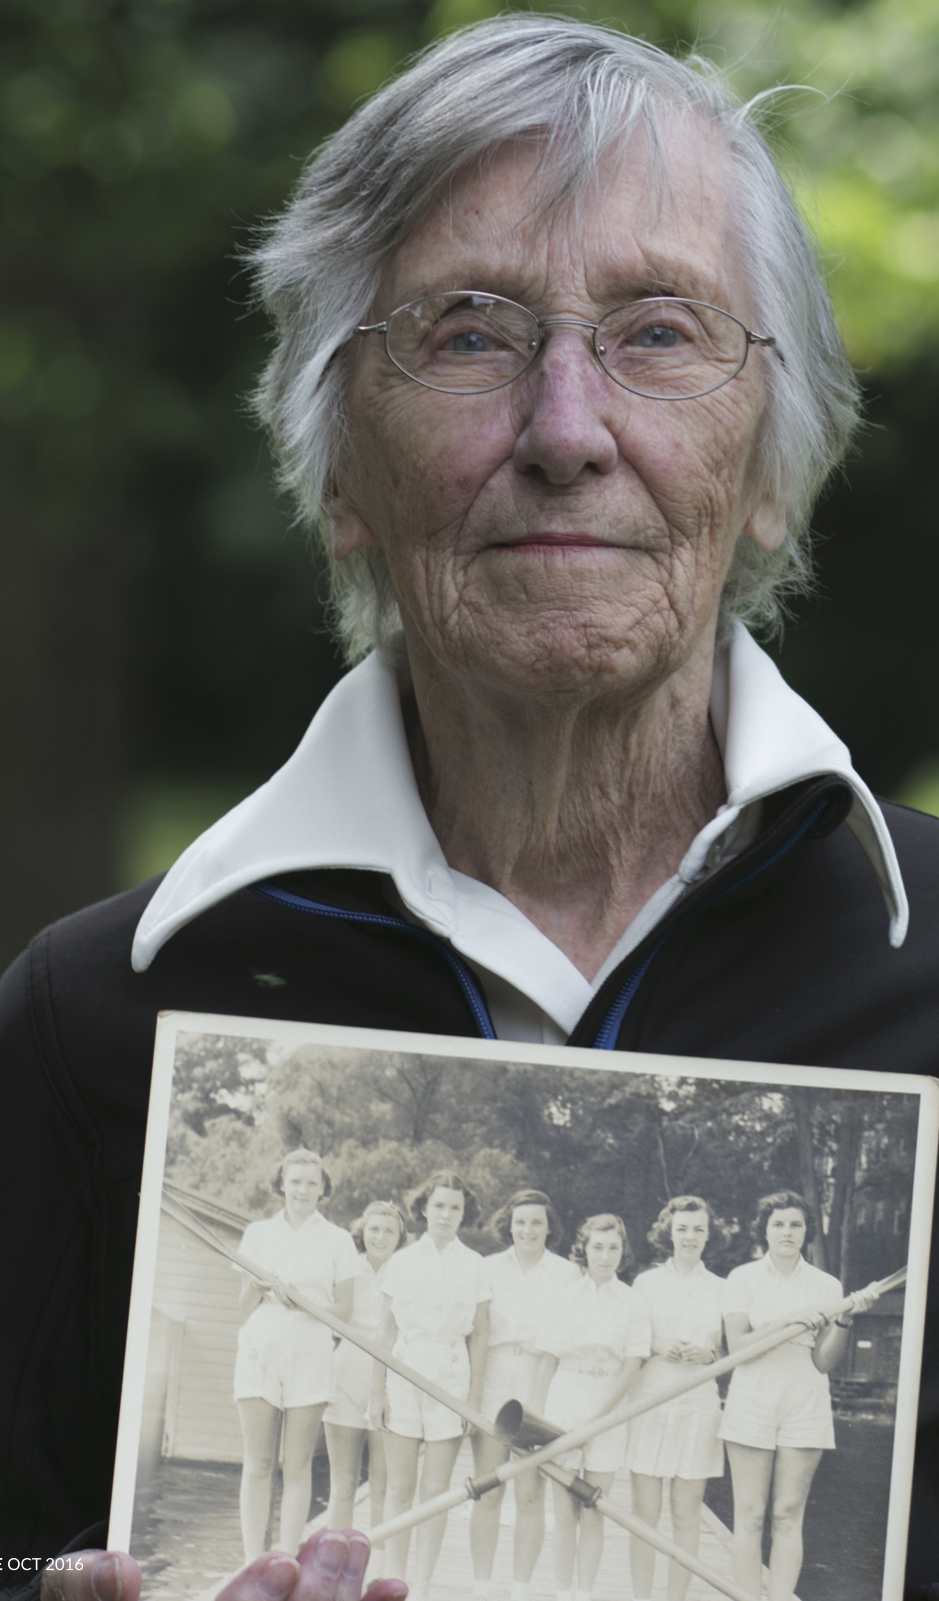 Dorris Sturges coxed the Wellesley Crew from 1939 - 1943. She says she was born too soon.